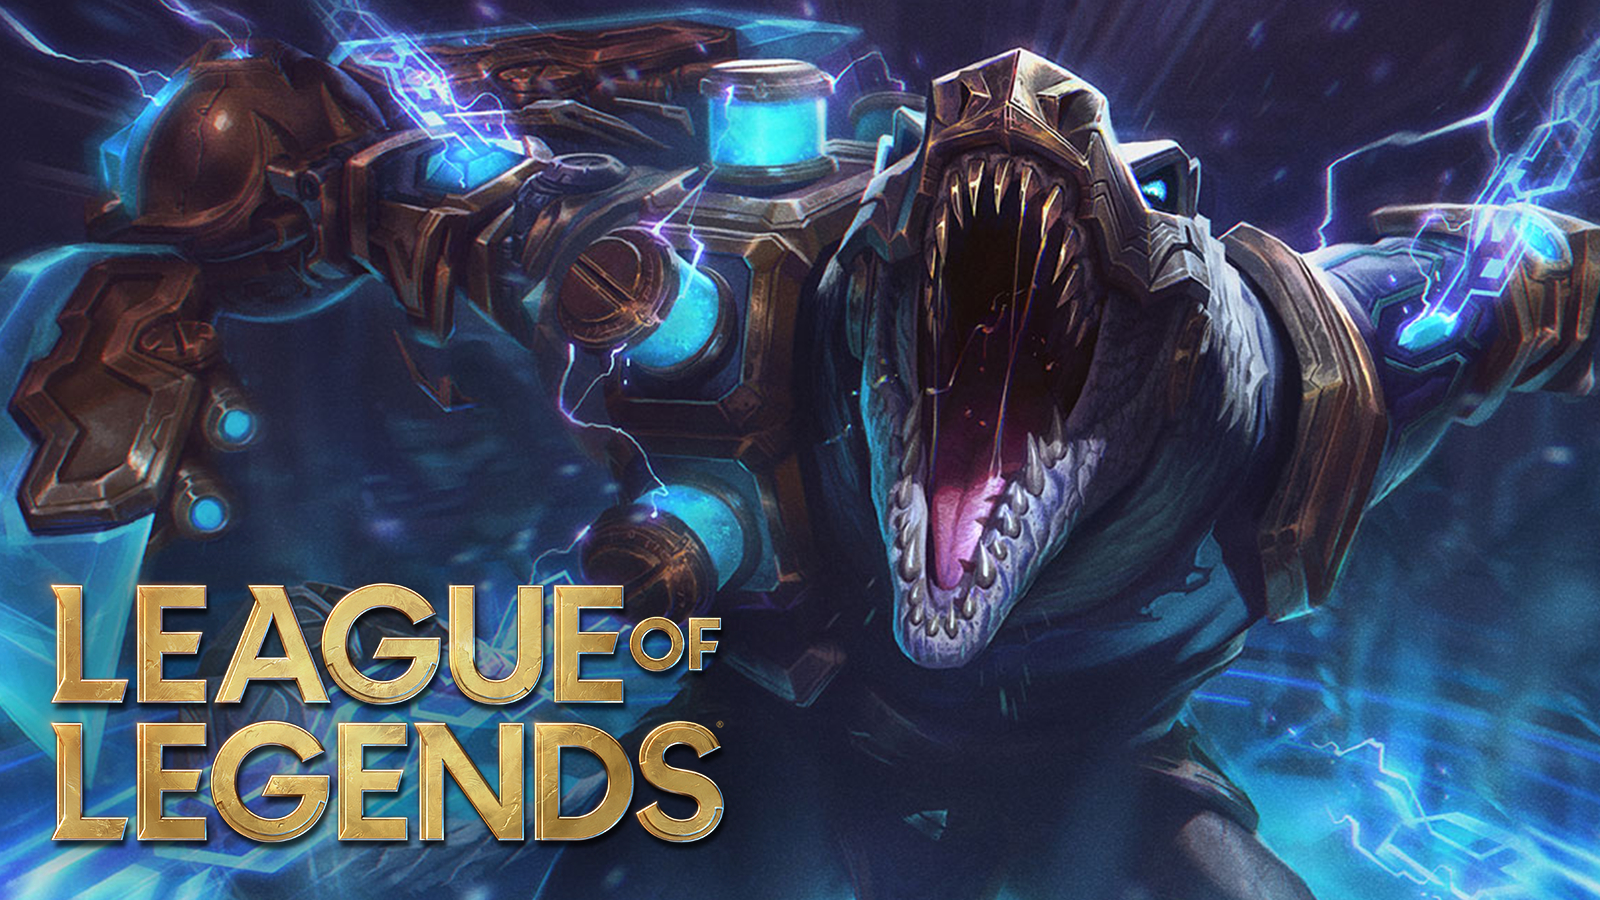 Hextech Renekton stands over League of Legends patch 11.4 notes.